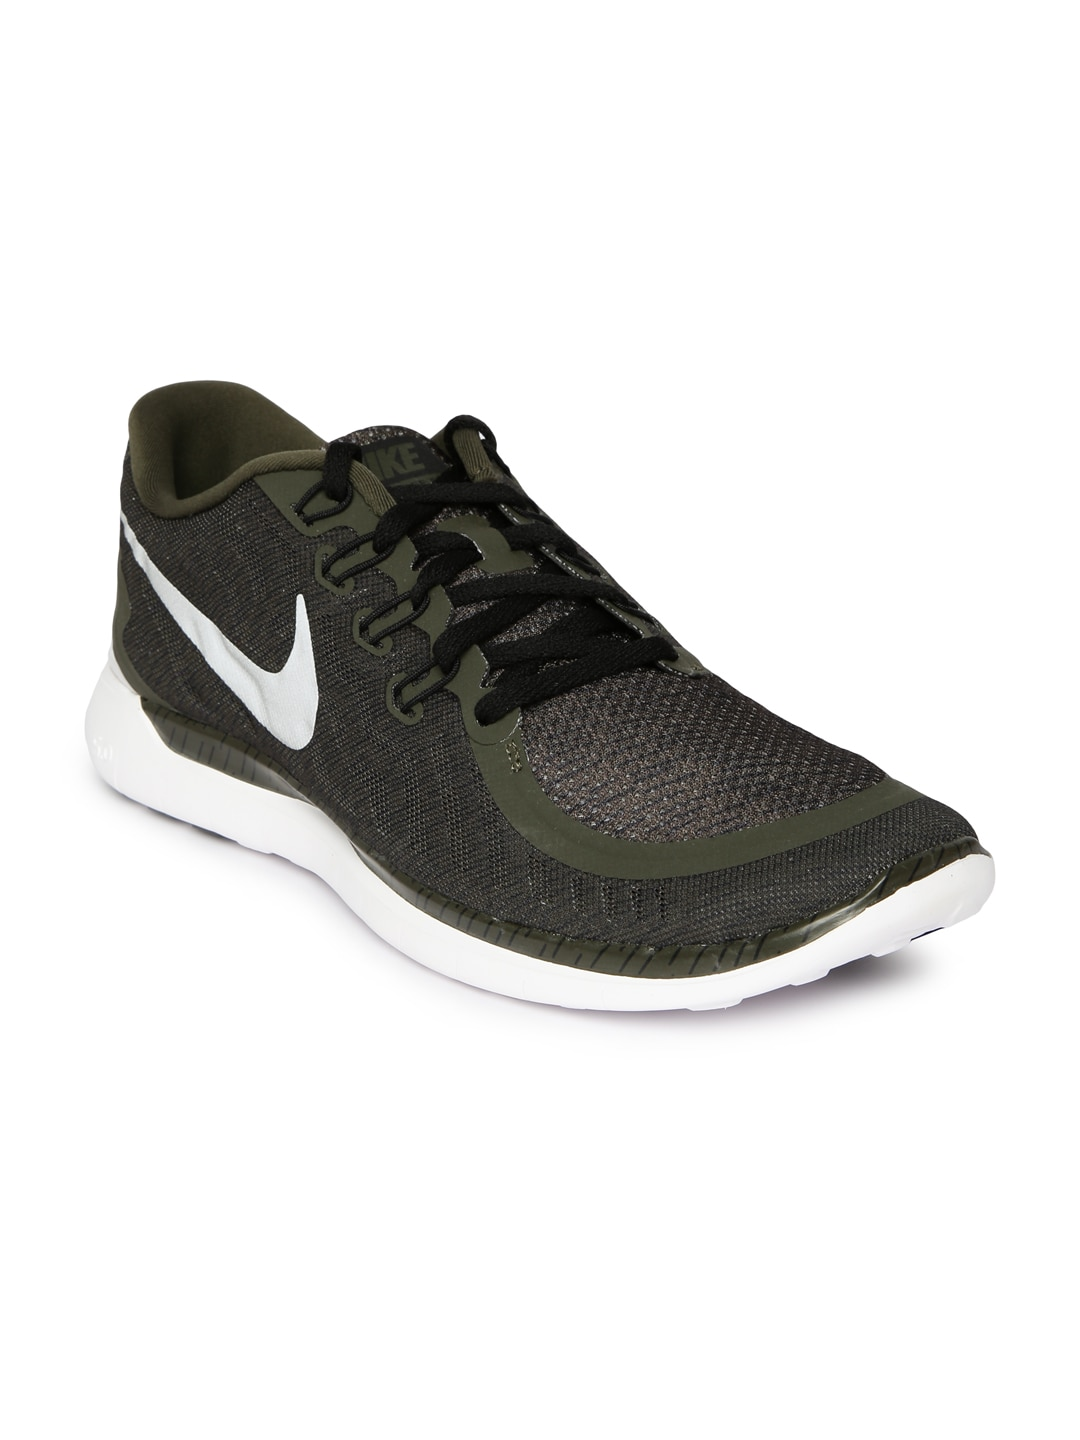 f80edd18d0d9 Nike 749592-300 Men Olive Green Free 50 Running Shoes- Price in India